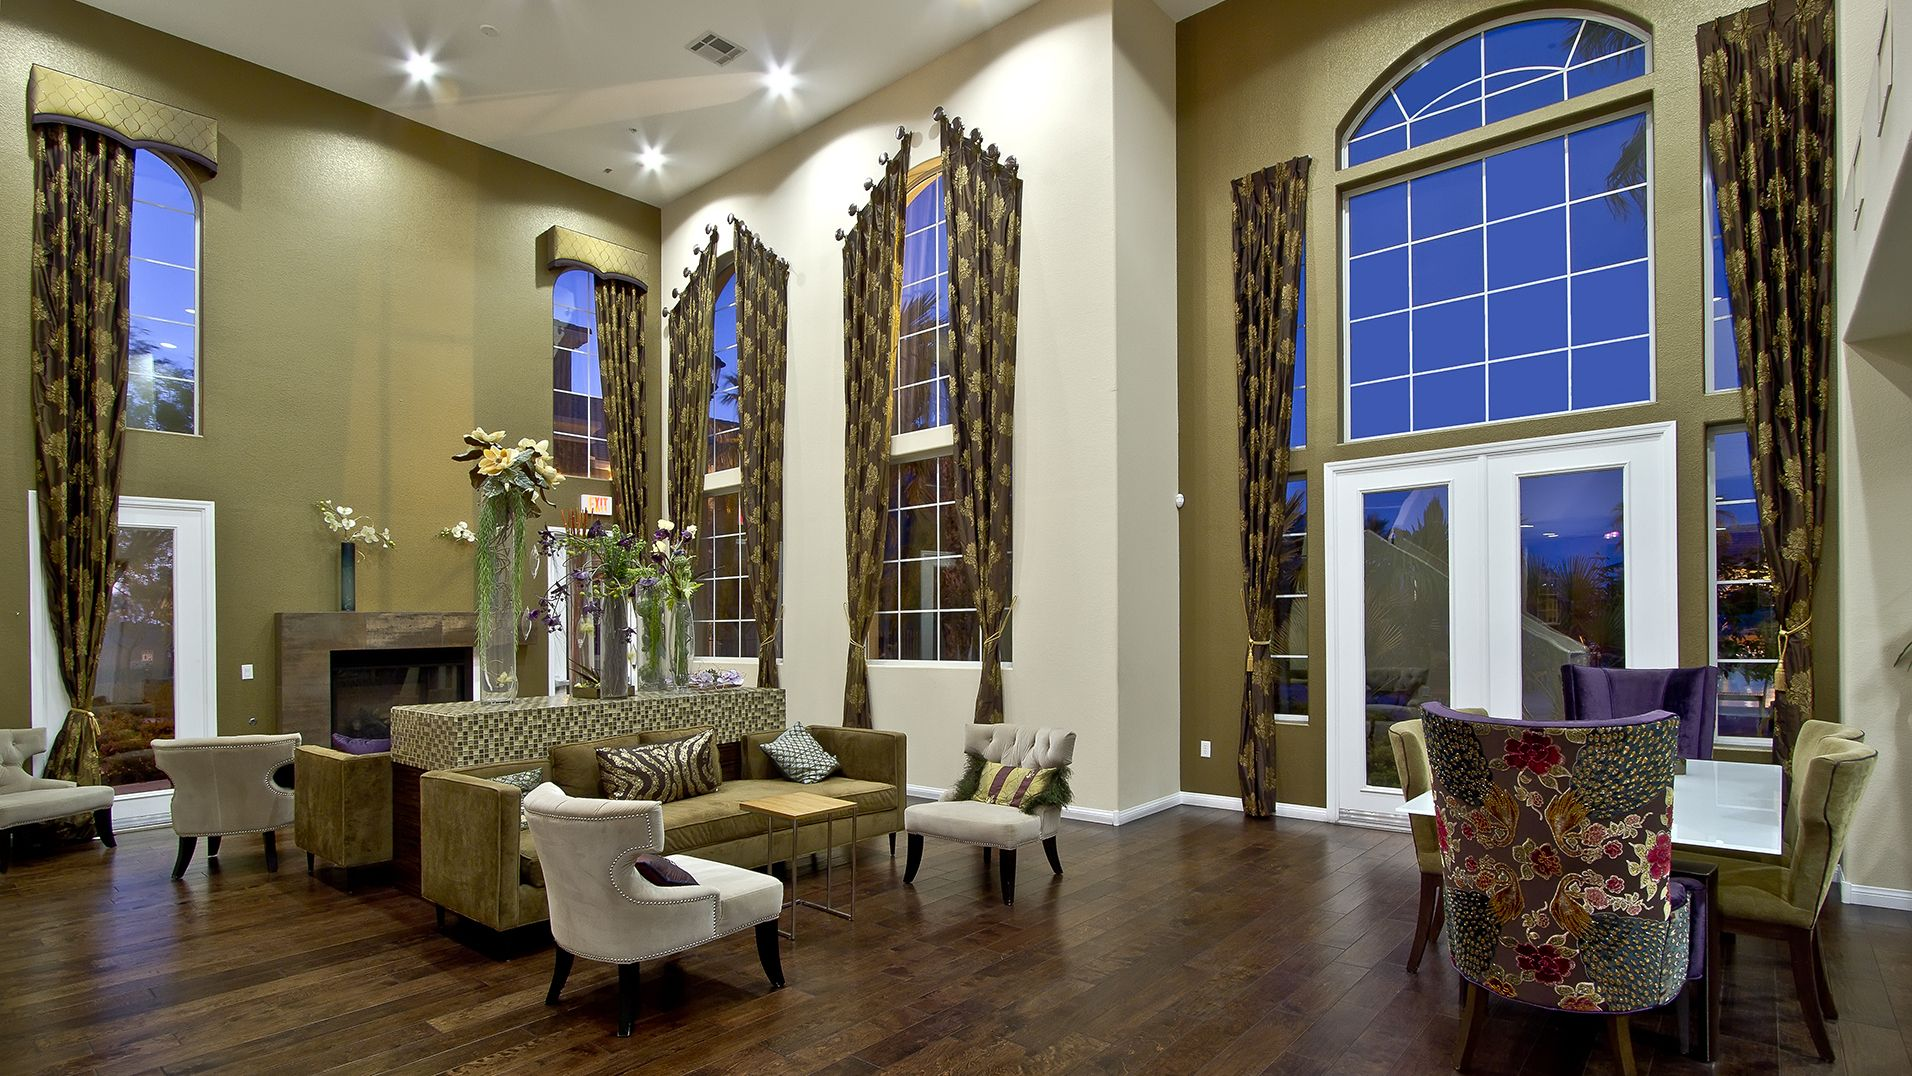 Amenities (With images) Looking for apartments, Las